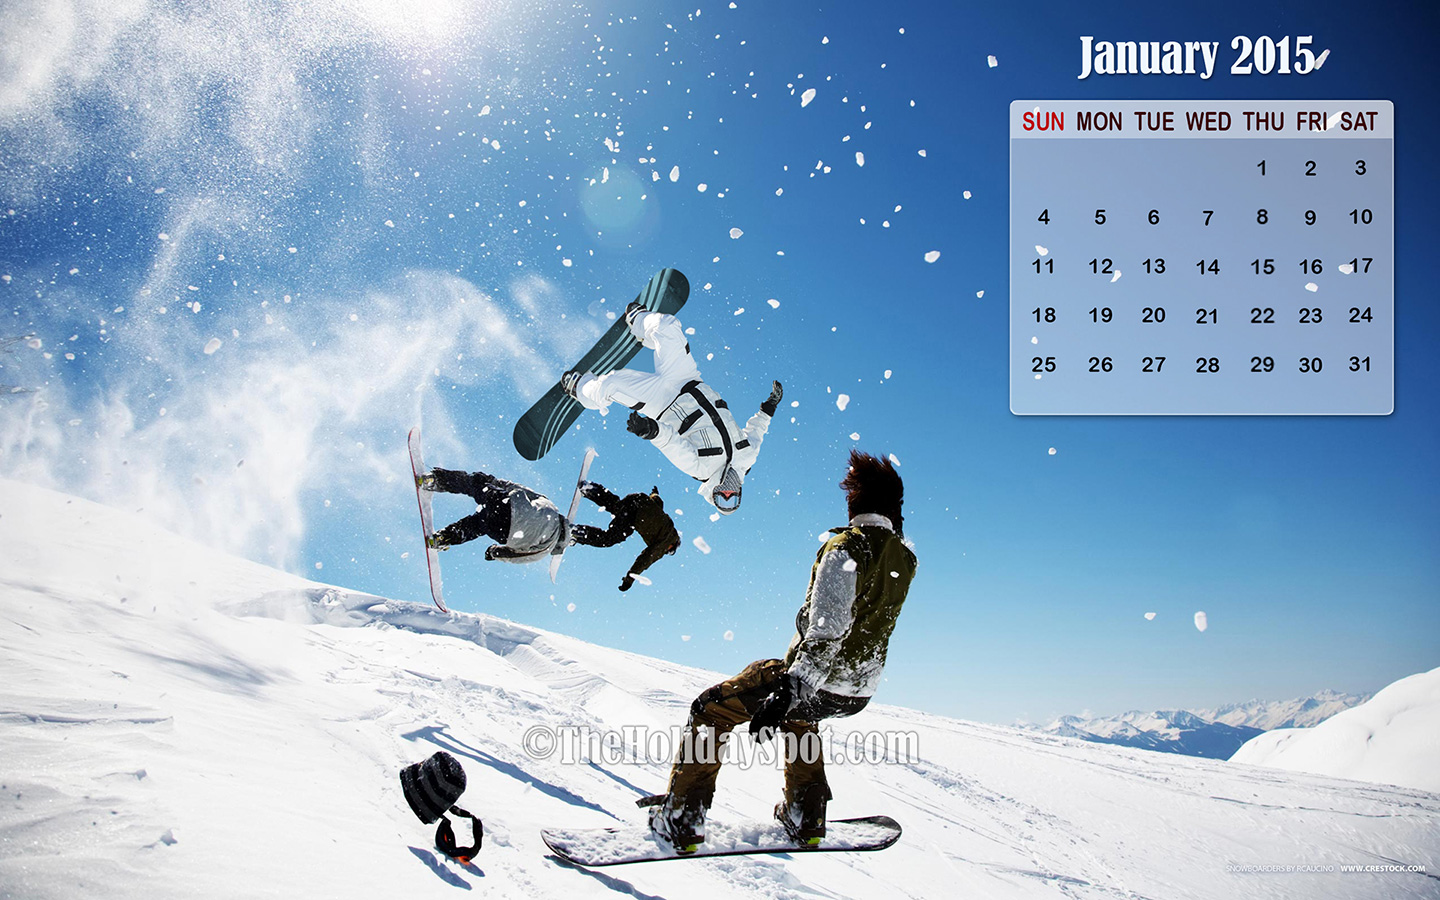 Month wise Calendar Wallpapers for the Whole Year 1440x900